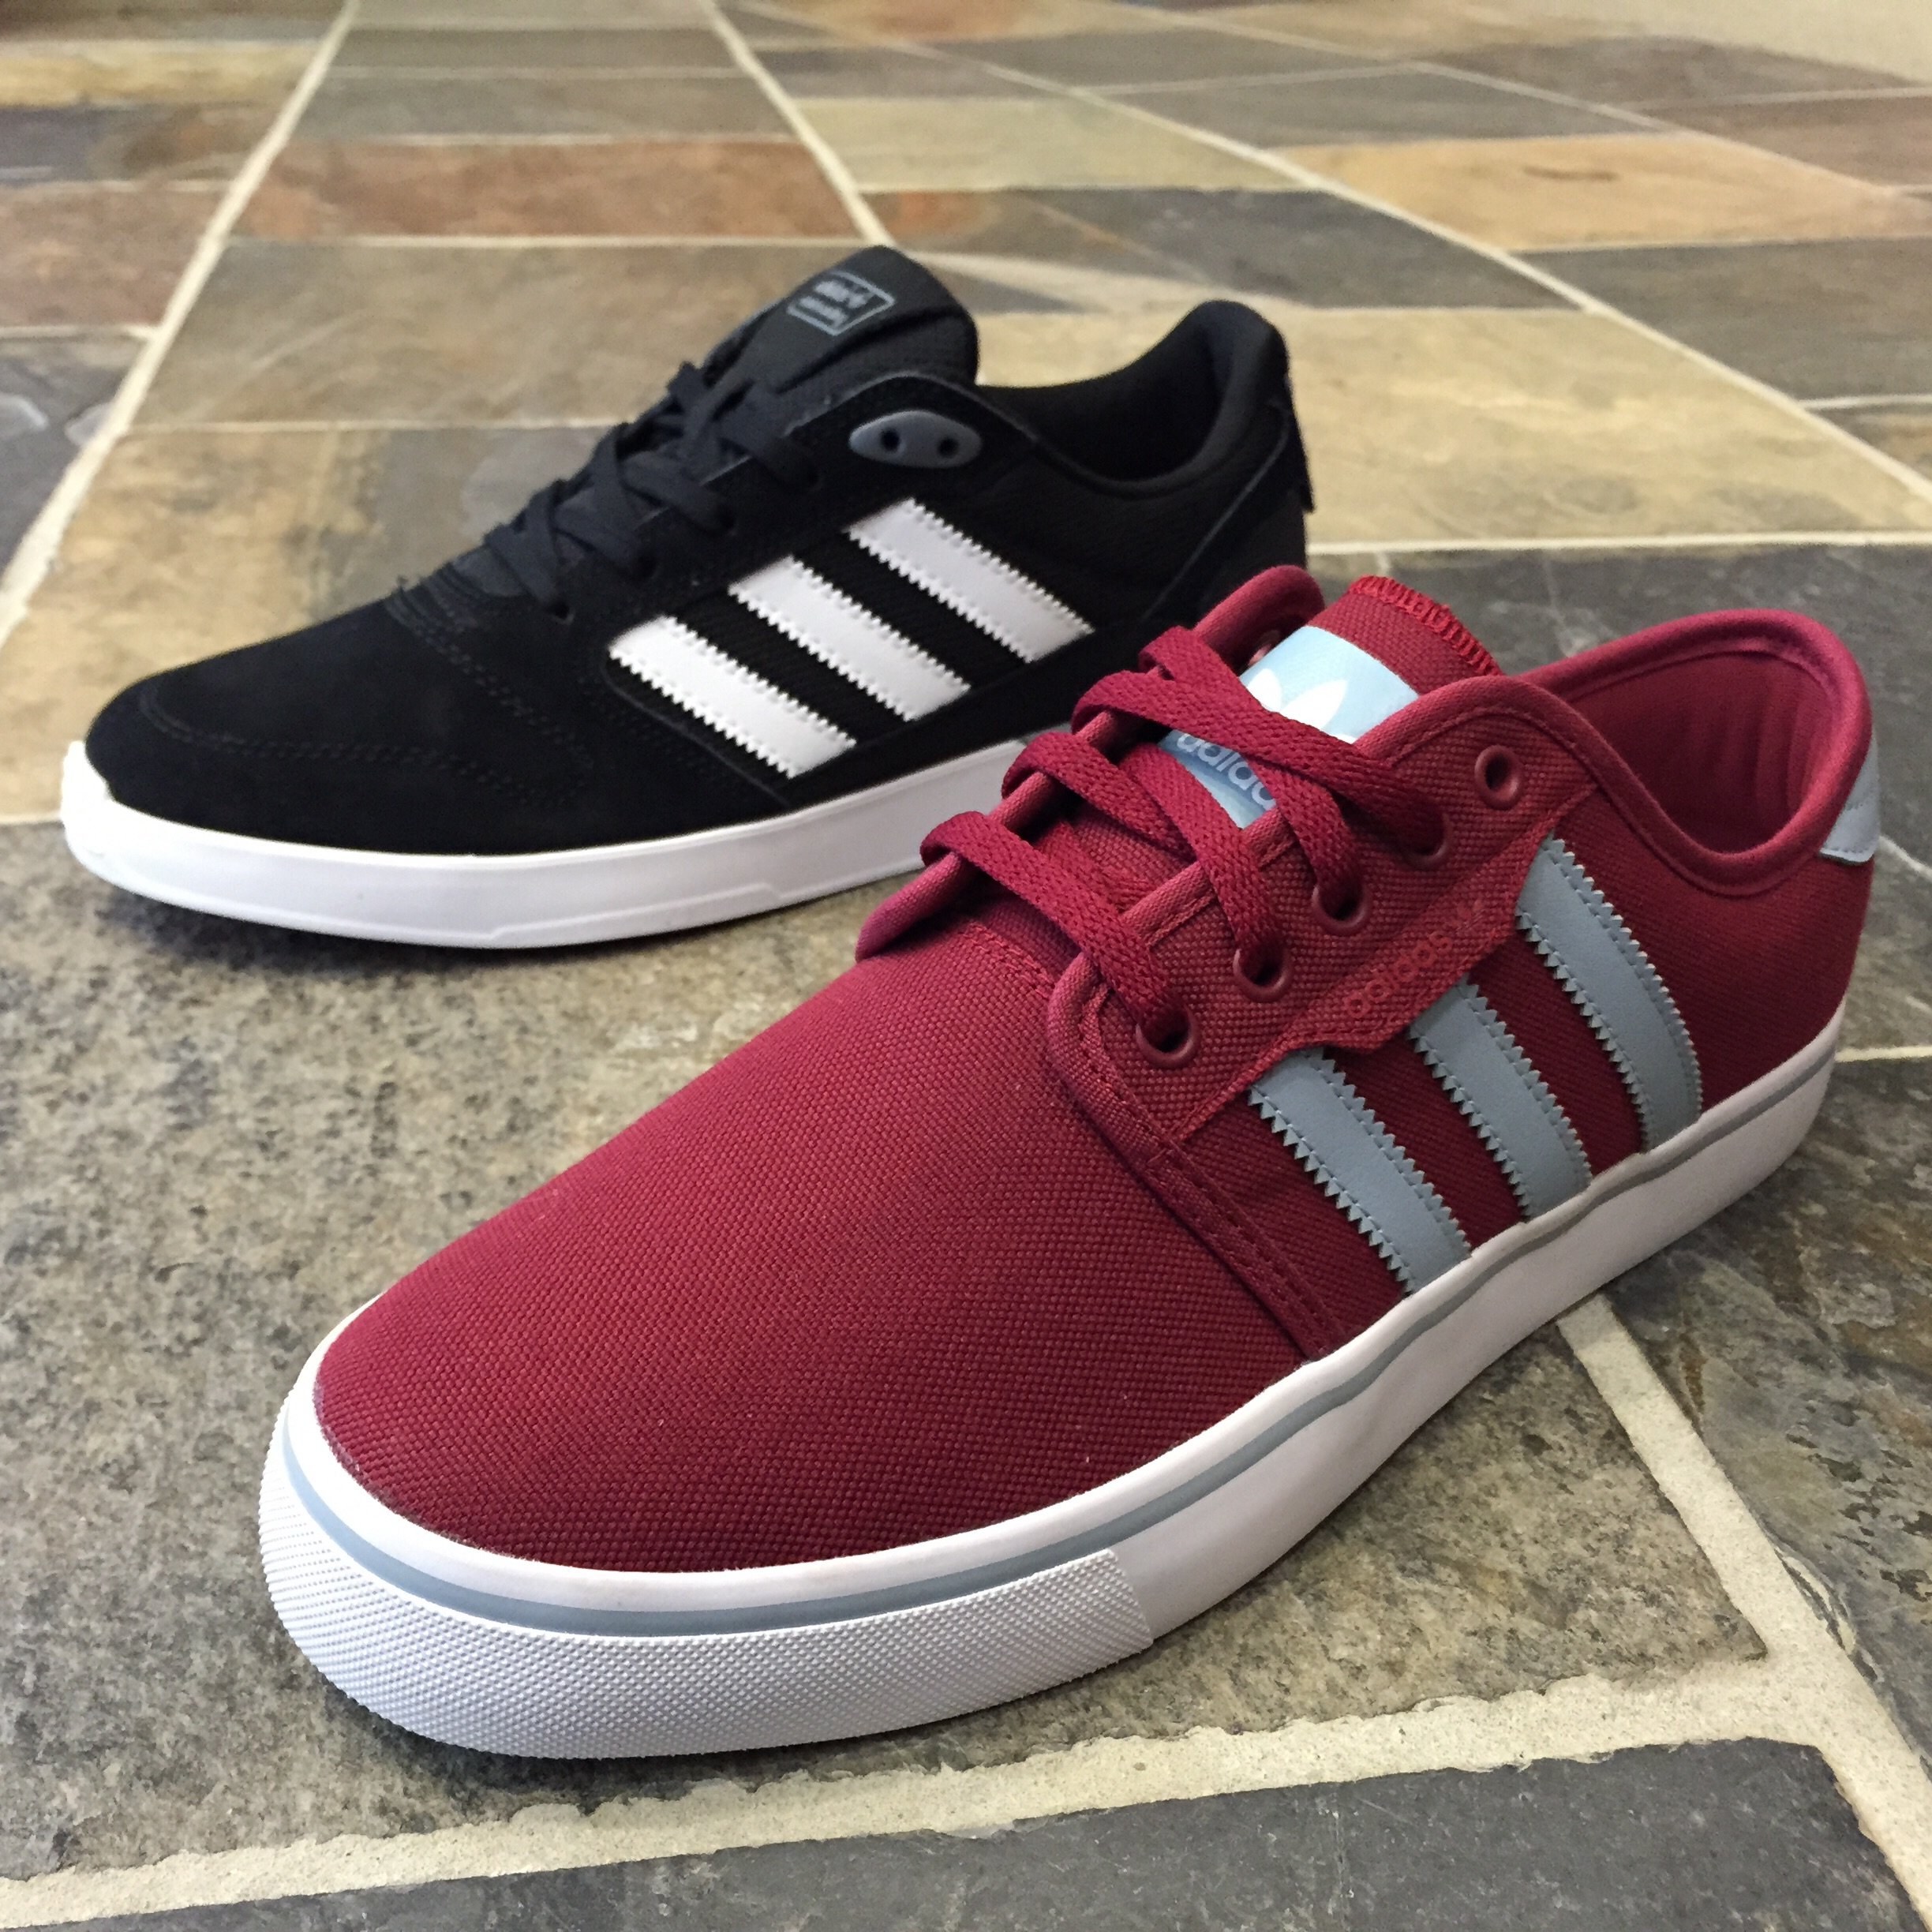 A new Seeley and ZX Vulc for the dudes.